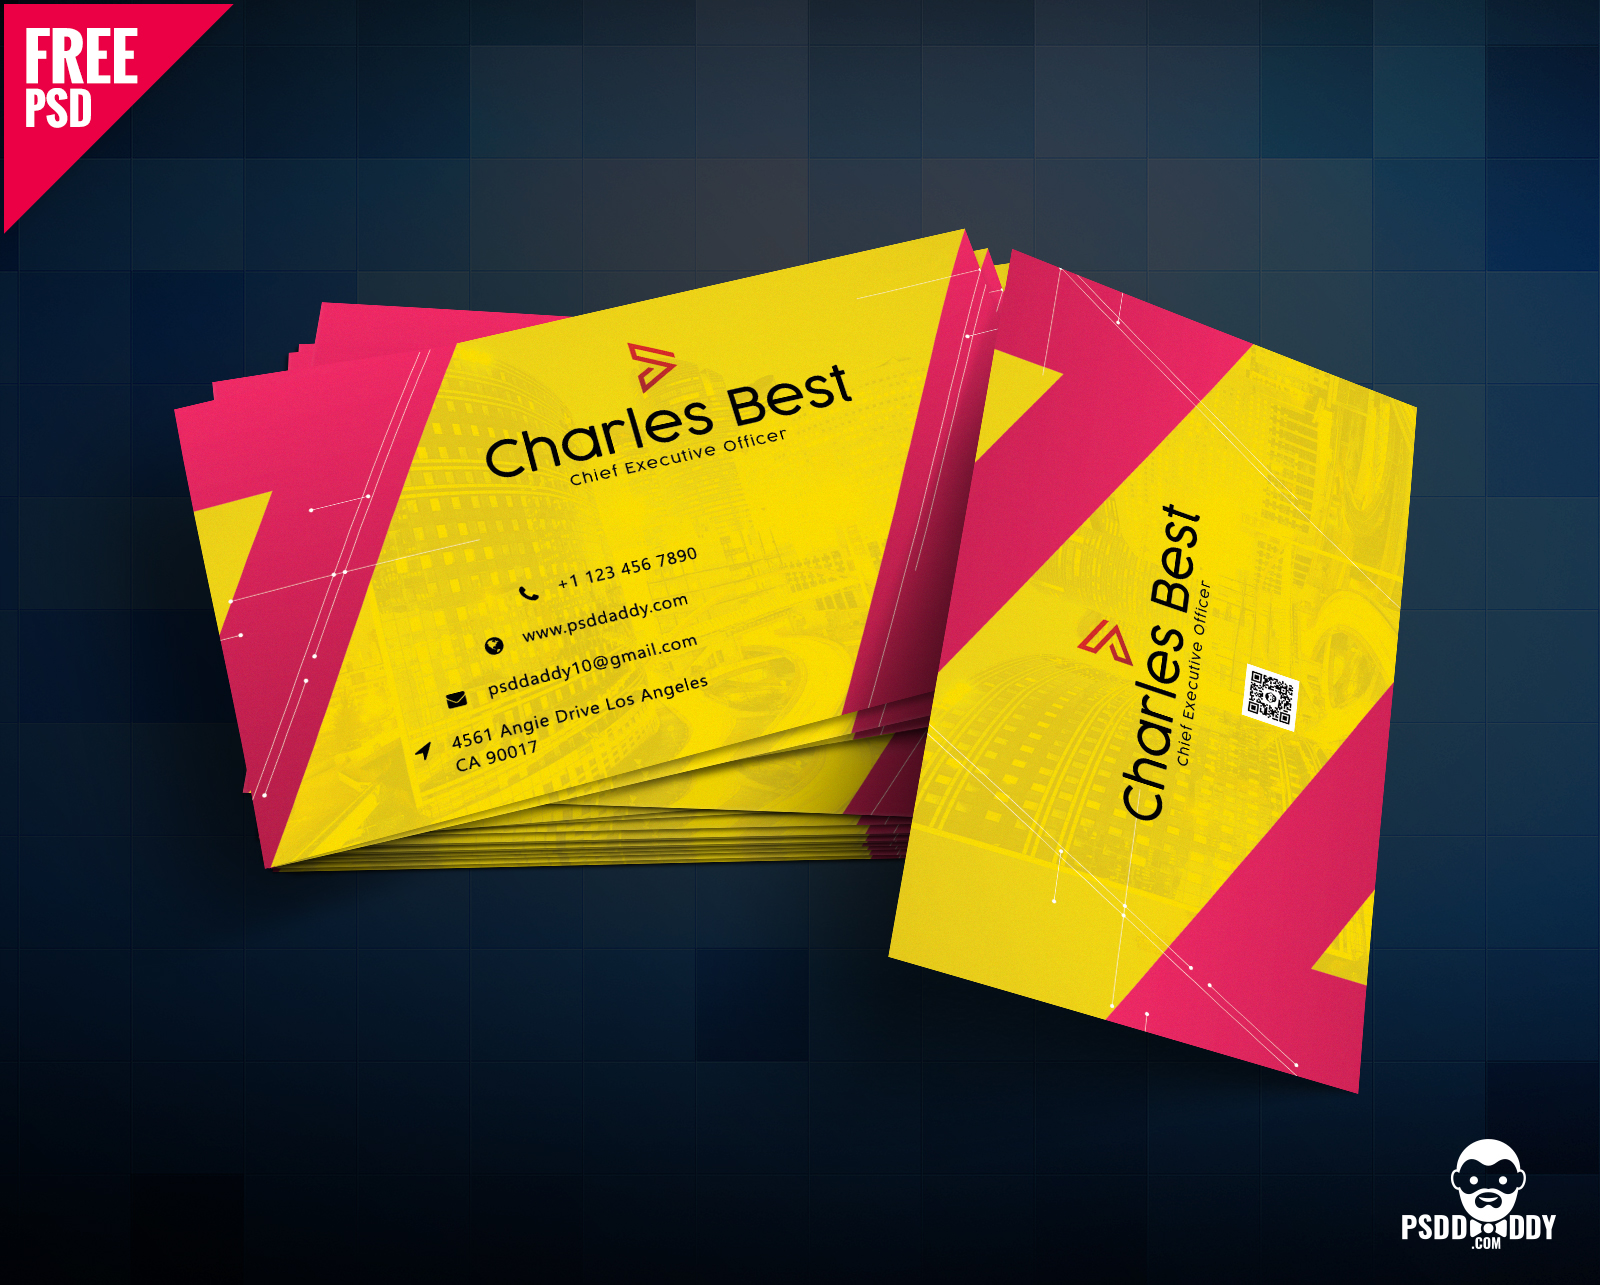 Free Business Card PSD Templates - Free business card template download